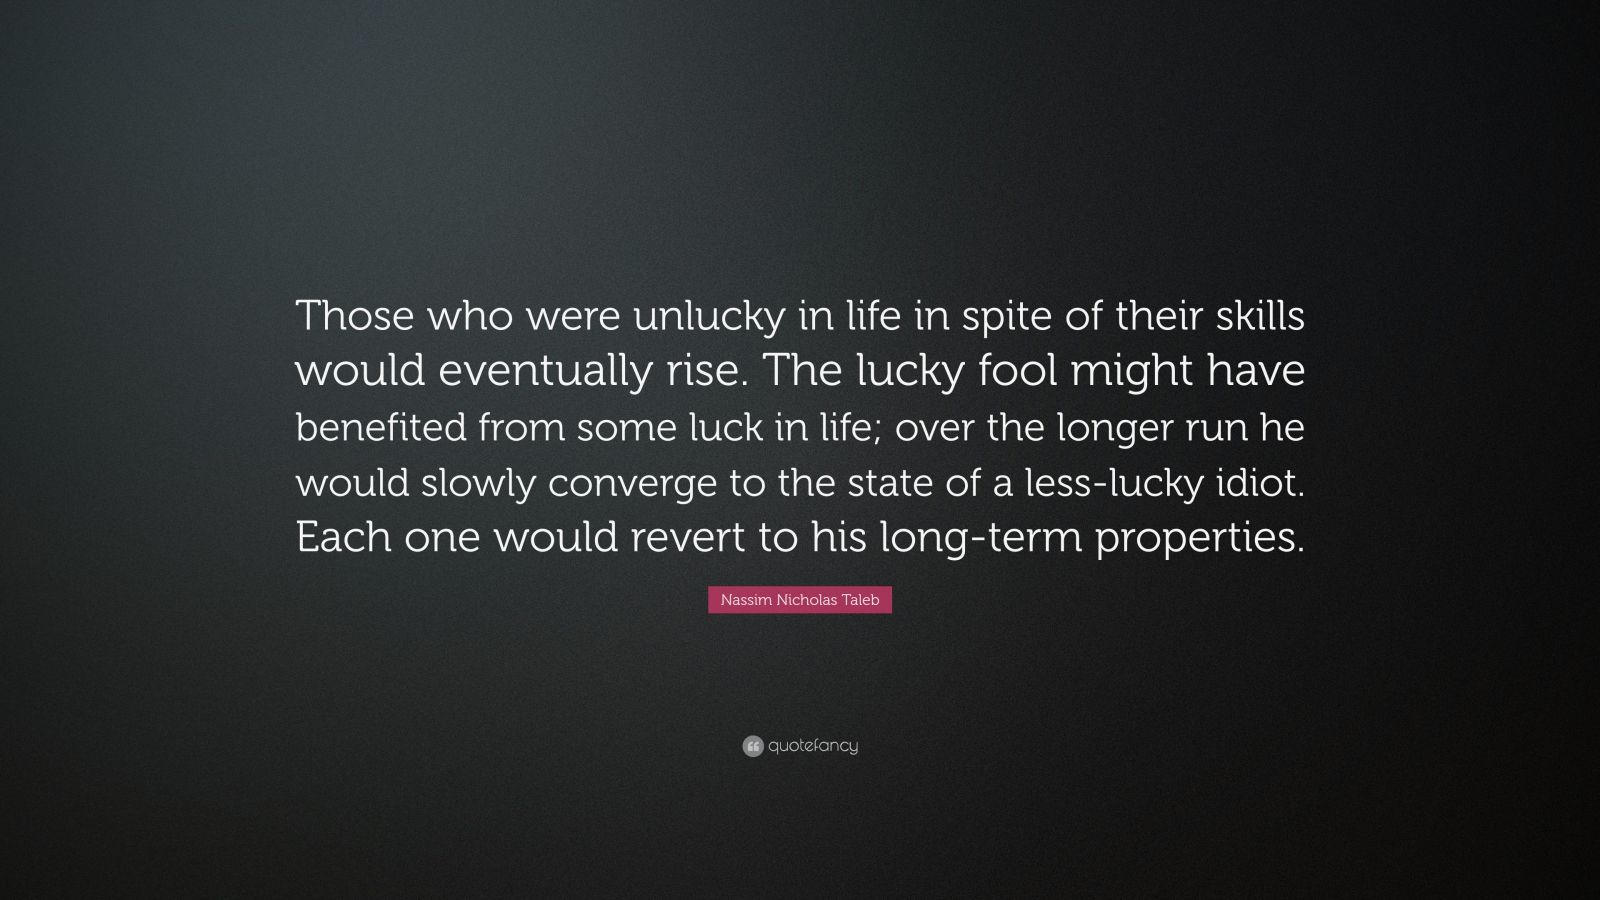 """Nassim Nicholas Taleb Quote: """"Those who were unlucky in life in spite of their skills would eventually rise. The lucky fool might have benefited from some luck in life; over the longer run he would slowly converge to the state of a less-lucky idiot. Each one would revert to his long-term properties."""""""